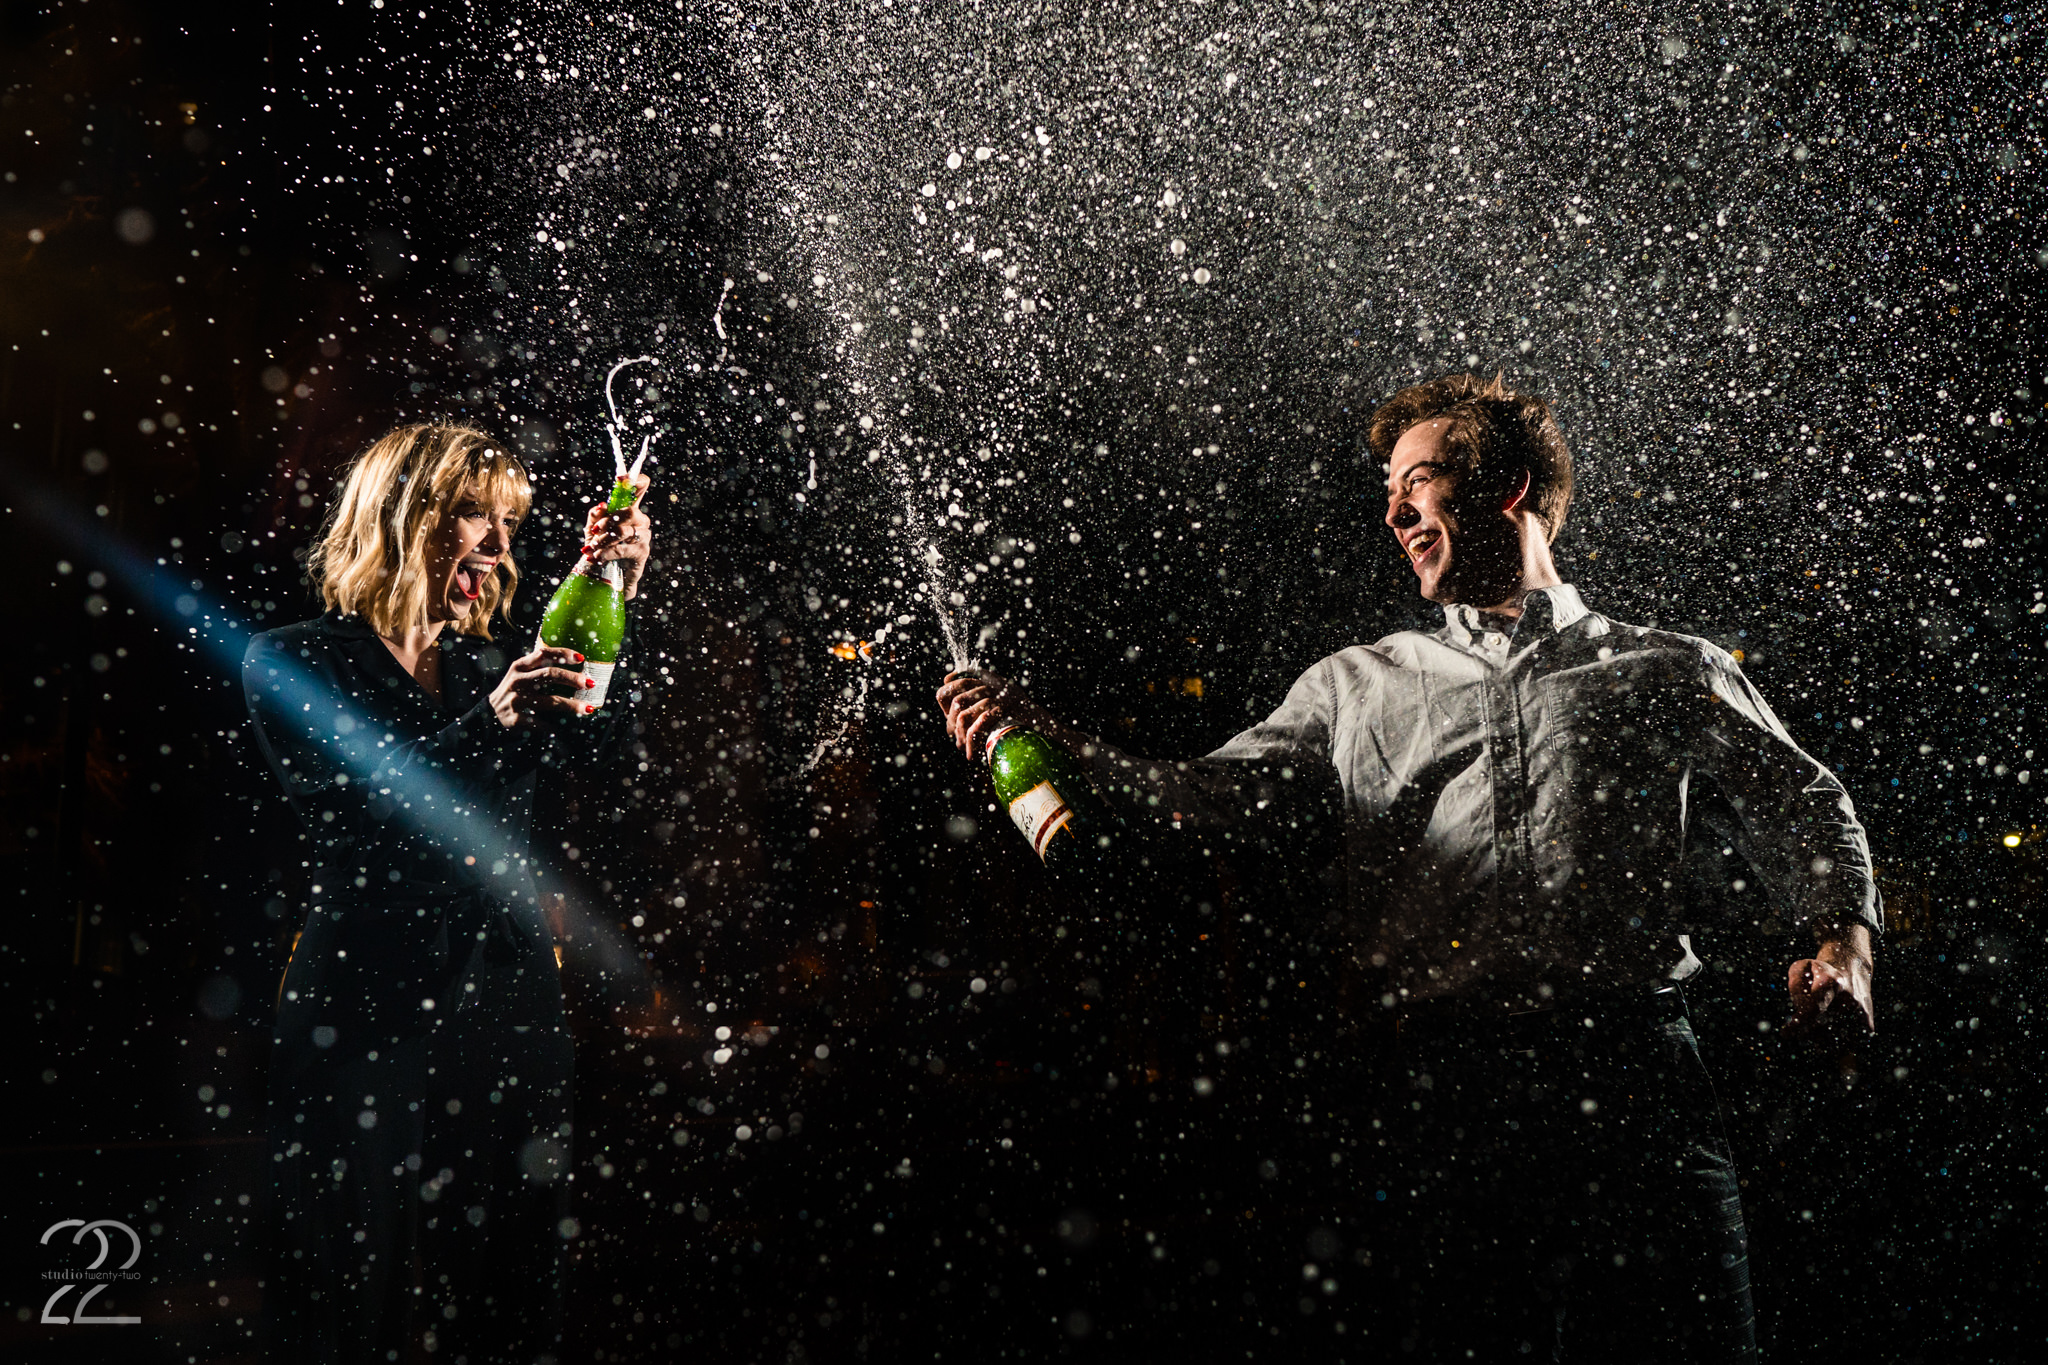 New Years Eve Engagement Photos - Studio 22 Photography - Champagne Spray Wedding Photos